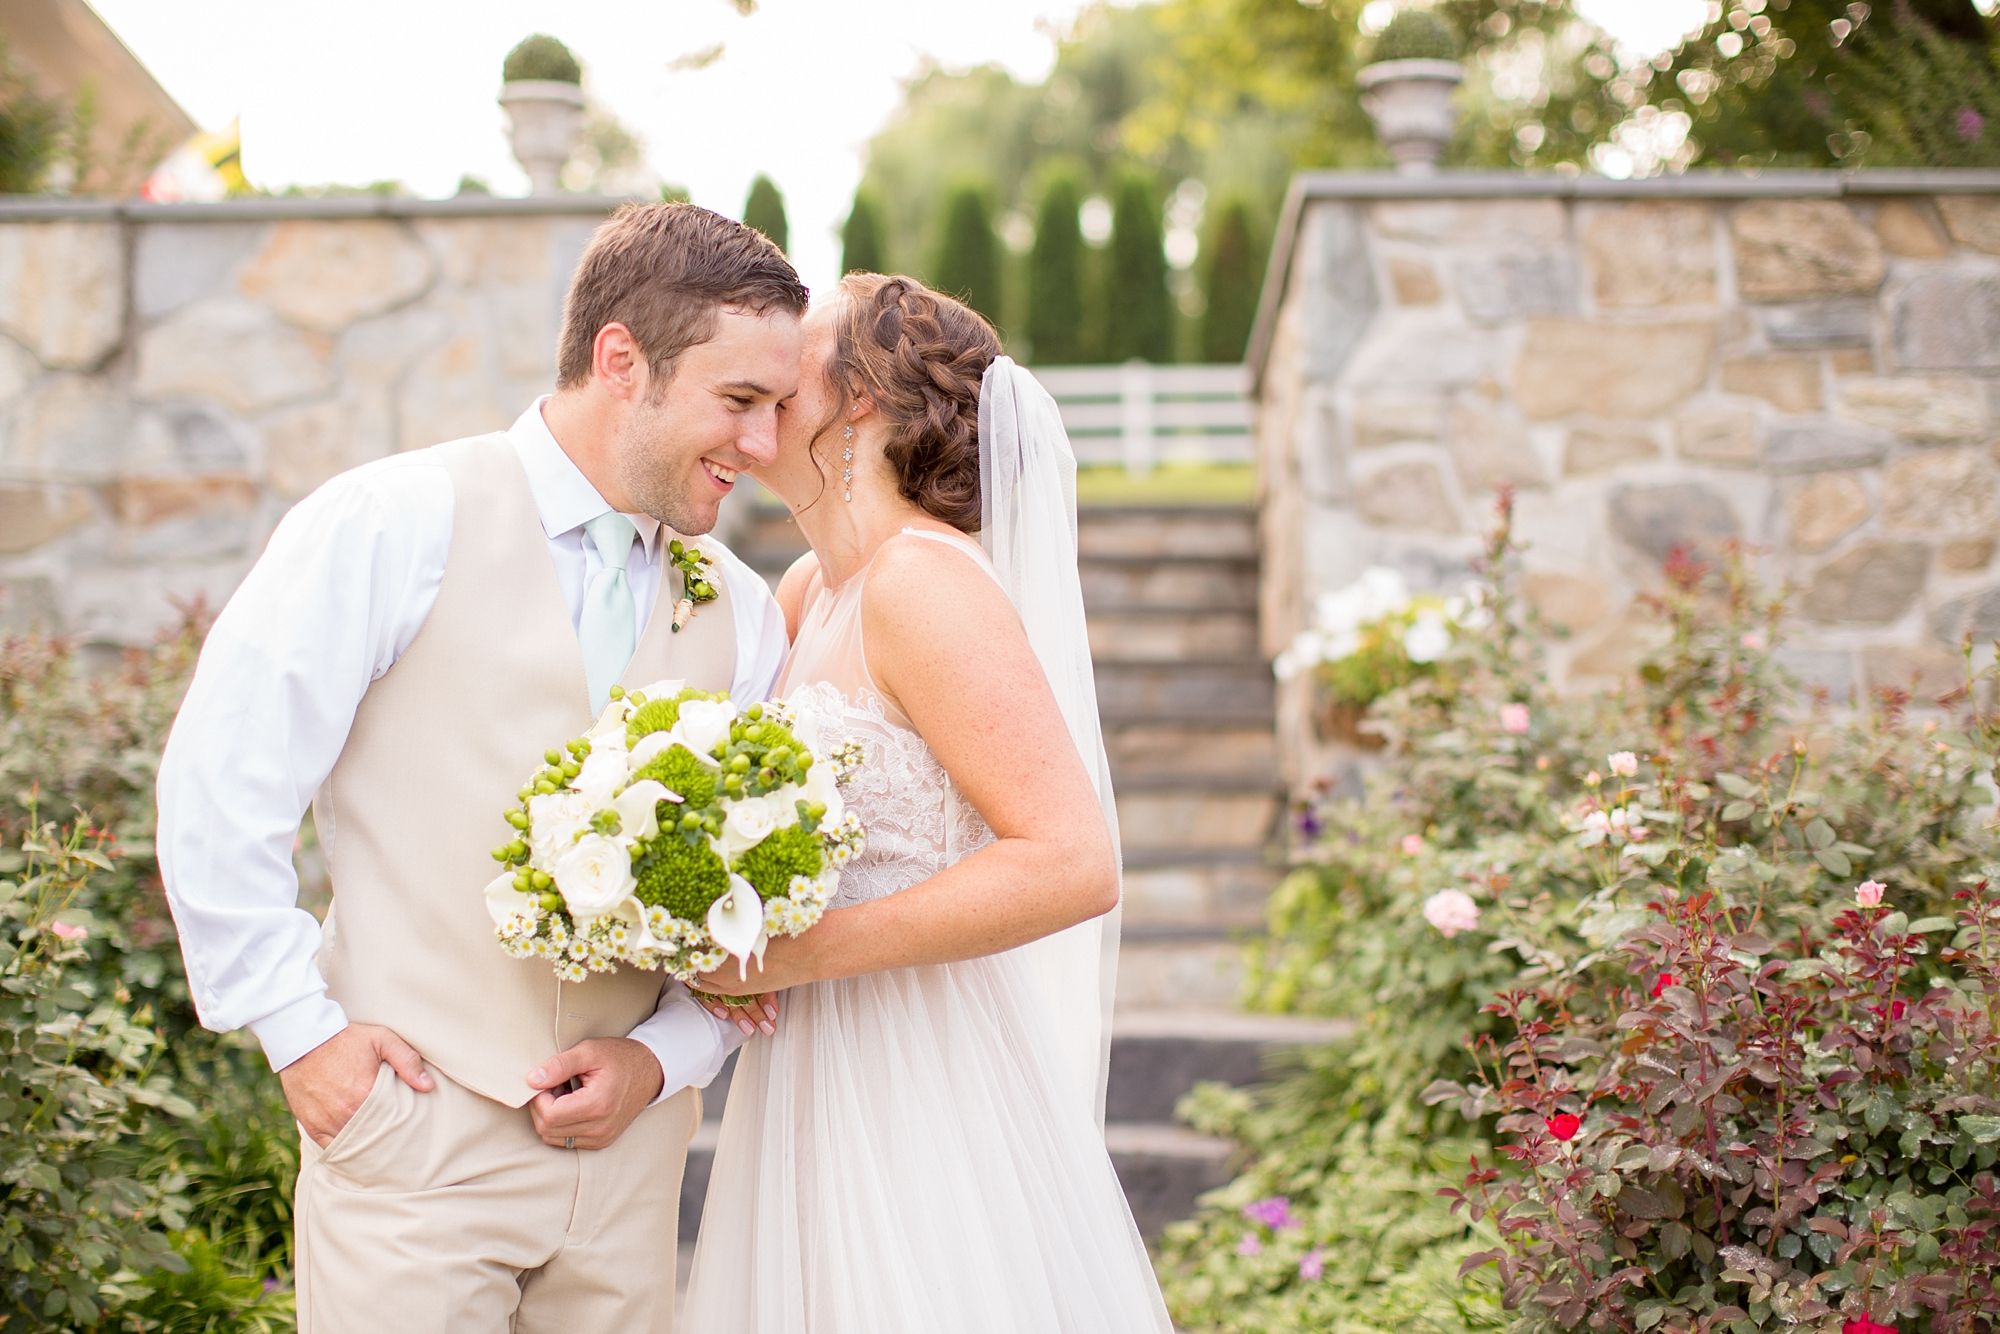 Herndon 5-Bride & Groom Portraits-889_anna grace photography baltimore maryland wedding photographer pond view farm photo.jpg